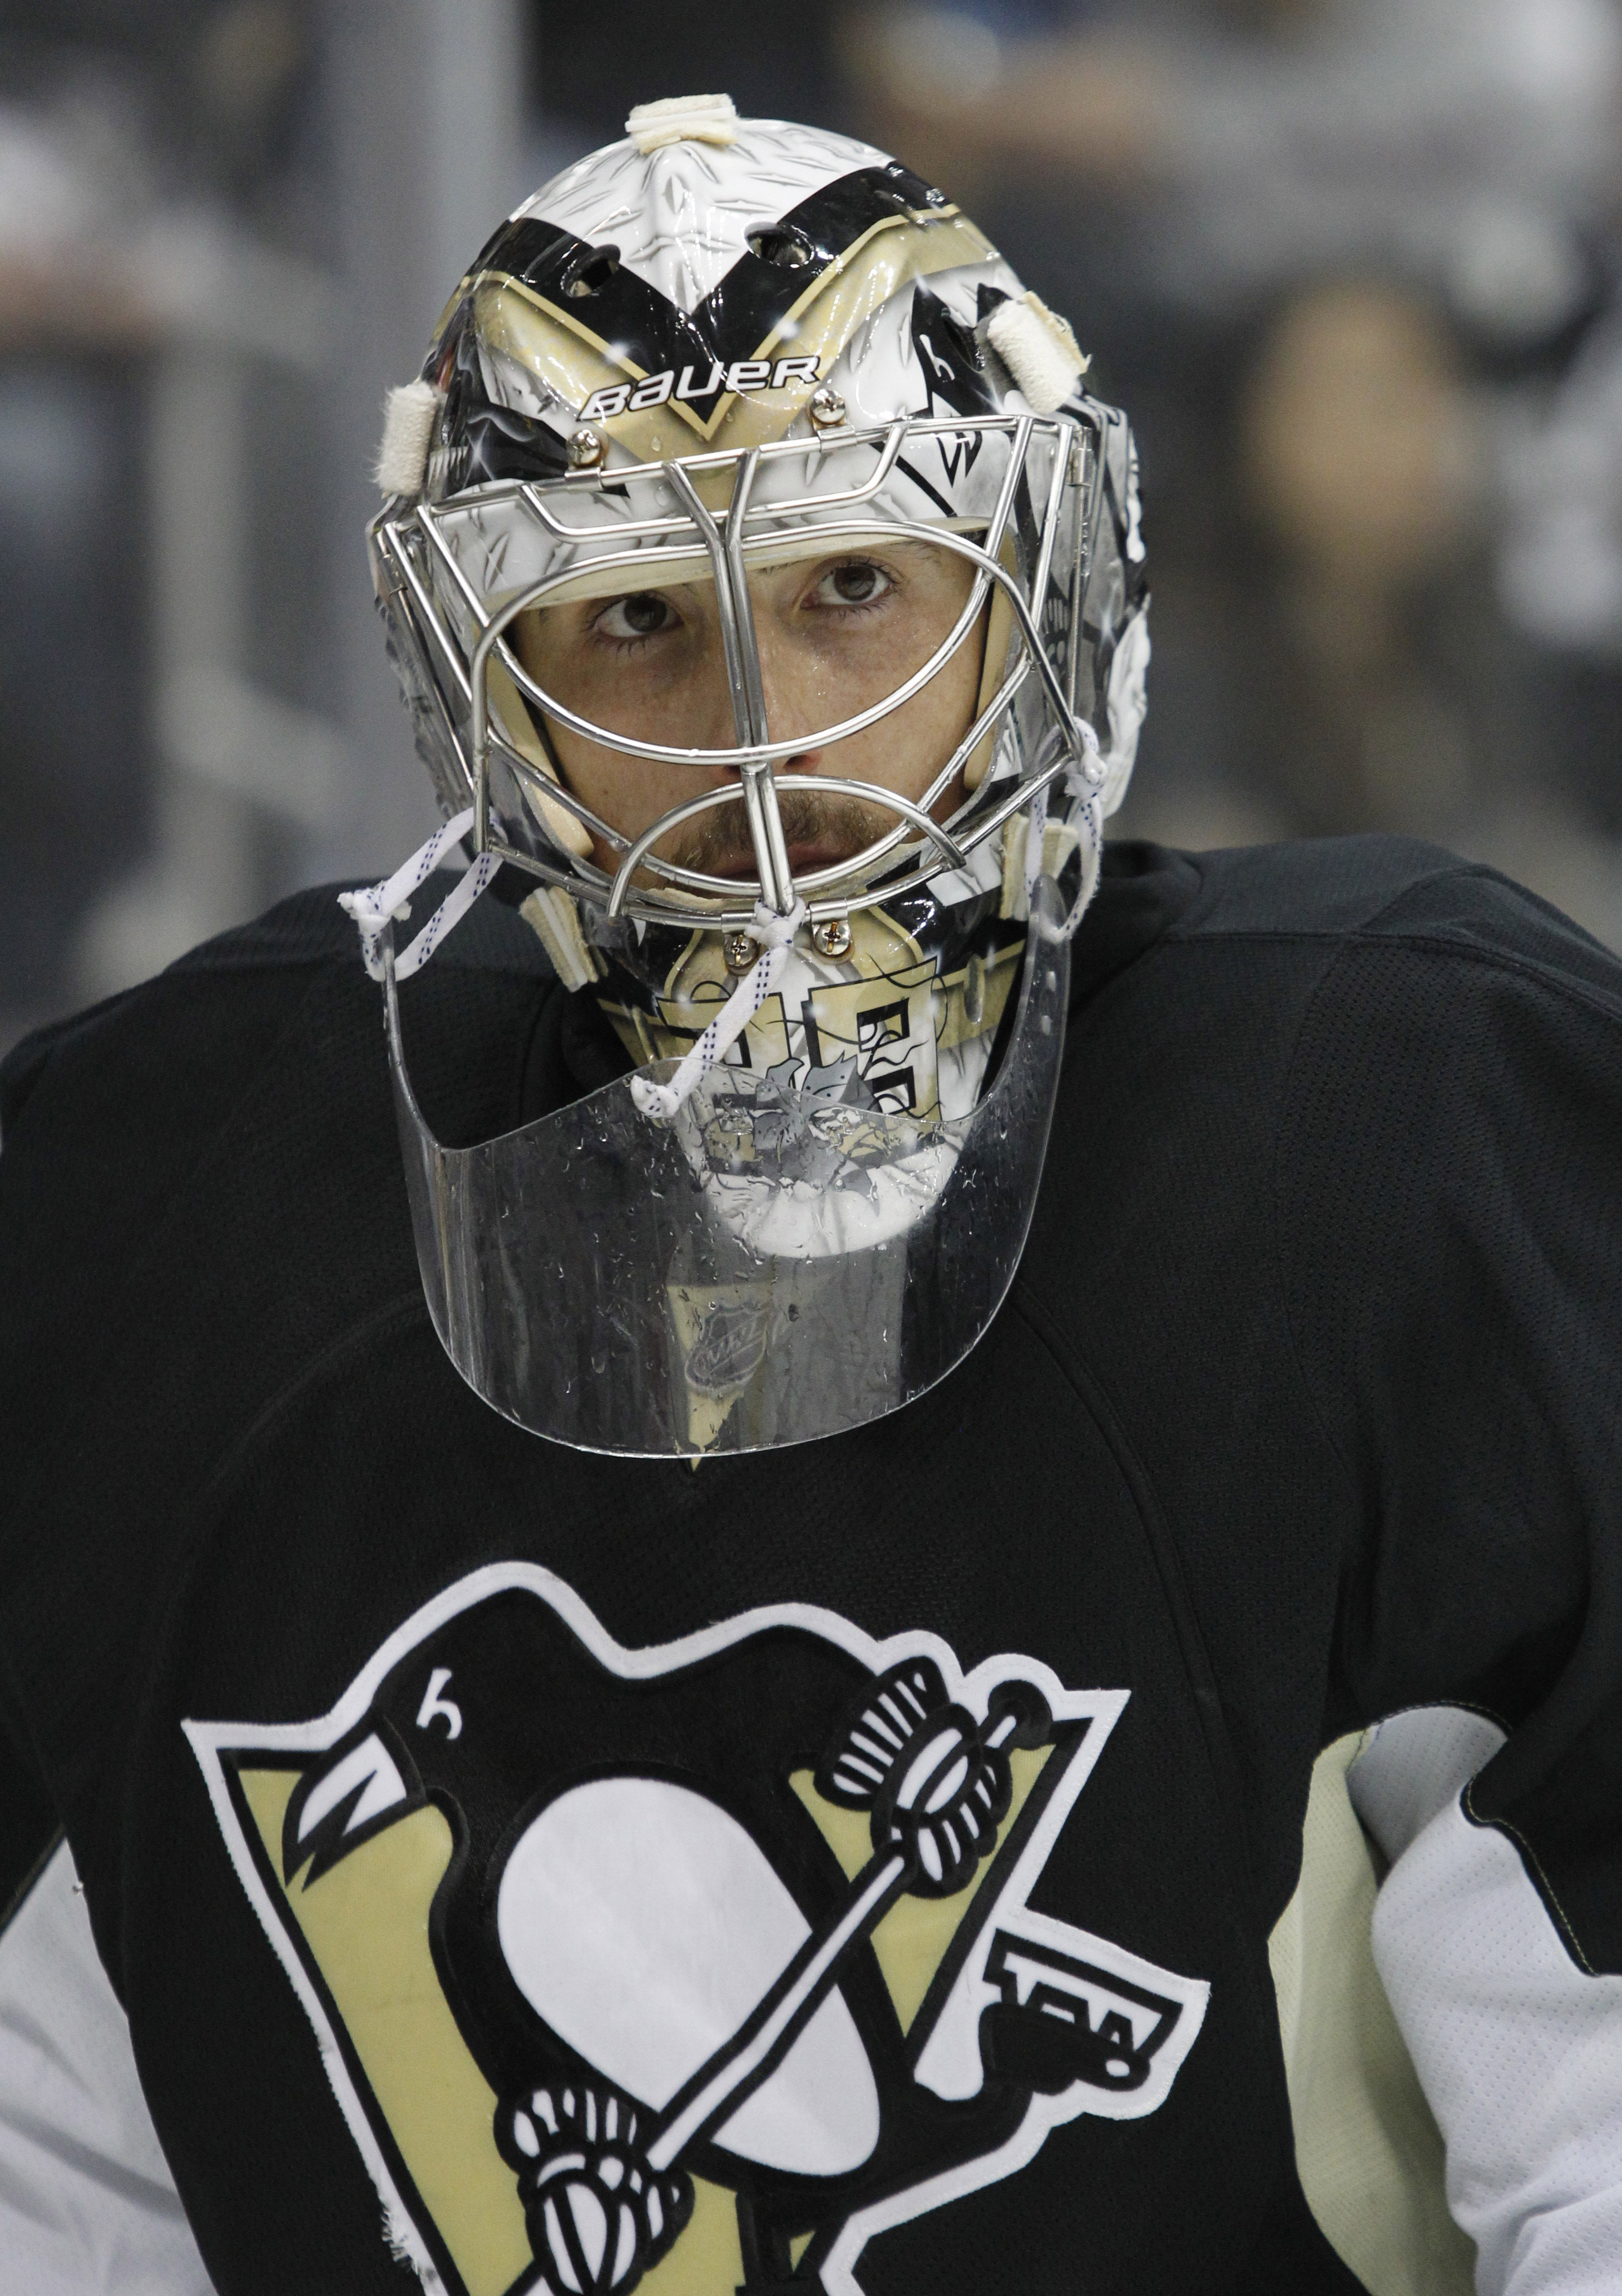 Marc-Andre Fleury, who has run hot and cold throughout his career, came unglued in 2013 playoffs. (USA Today)